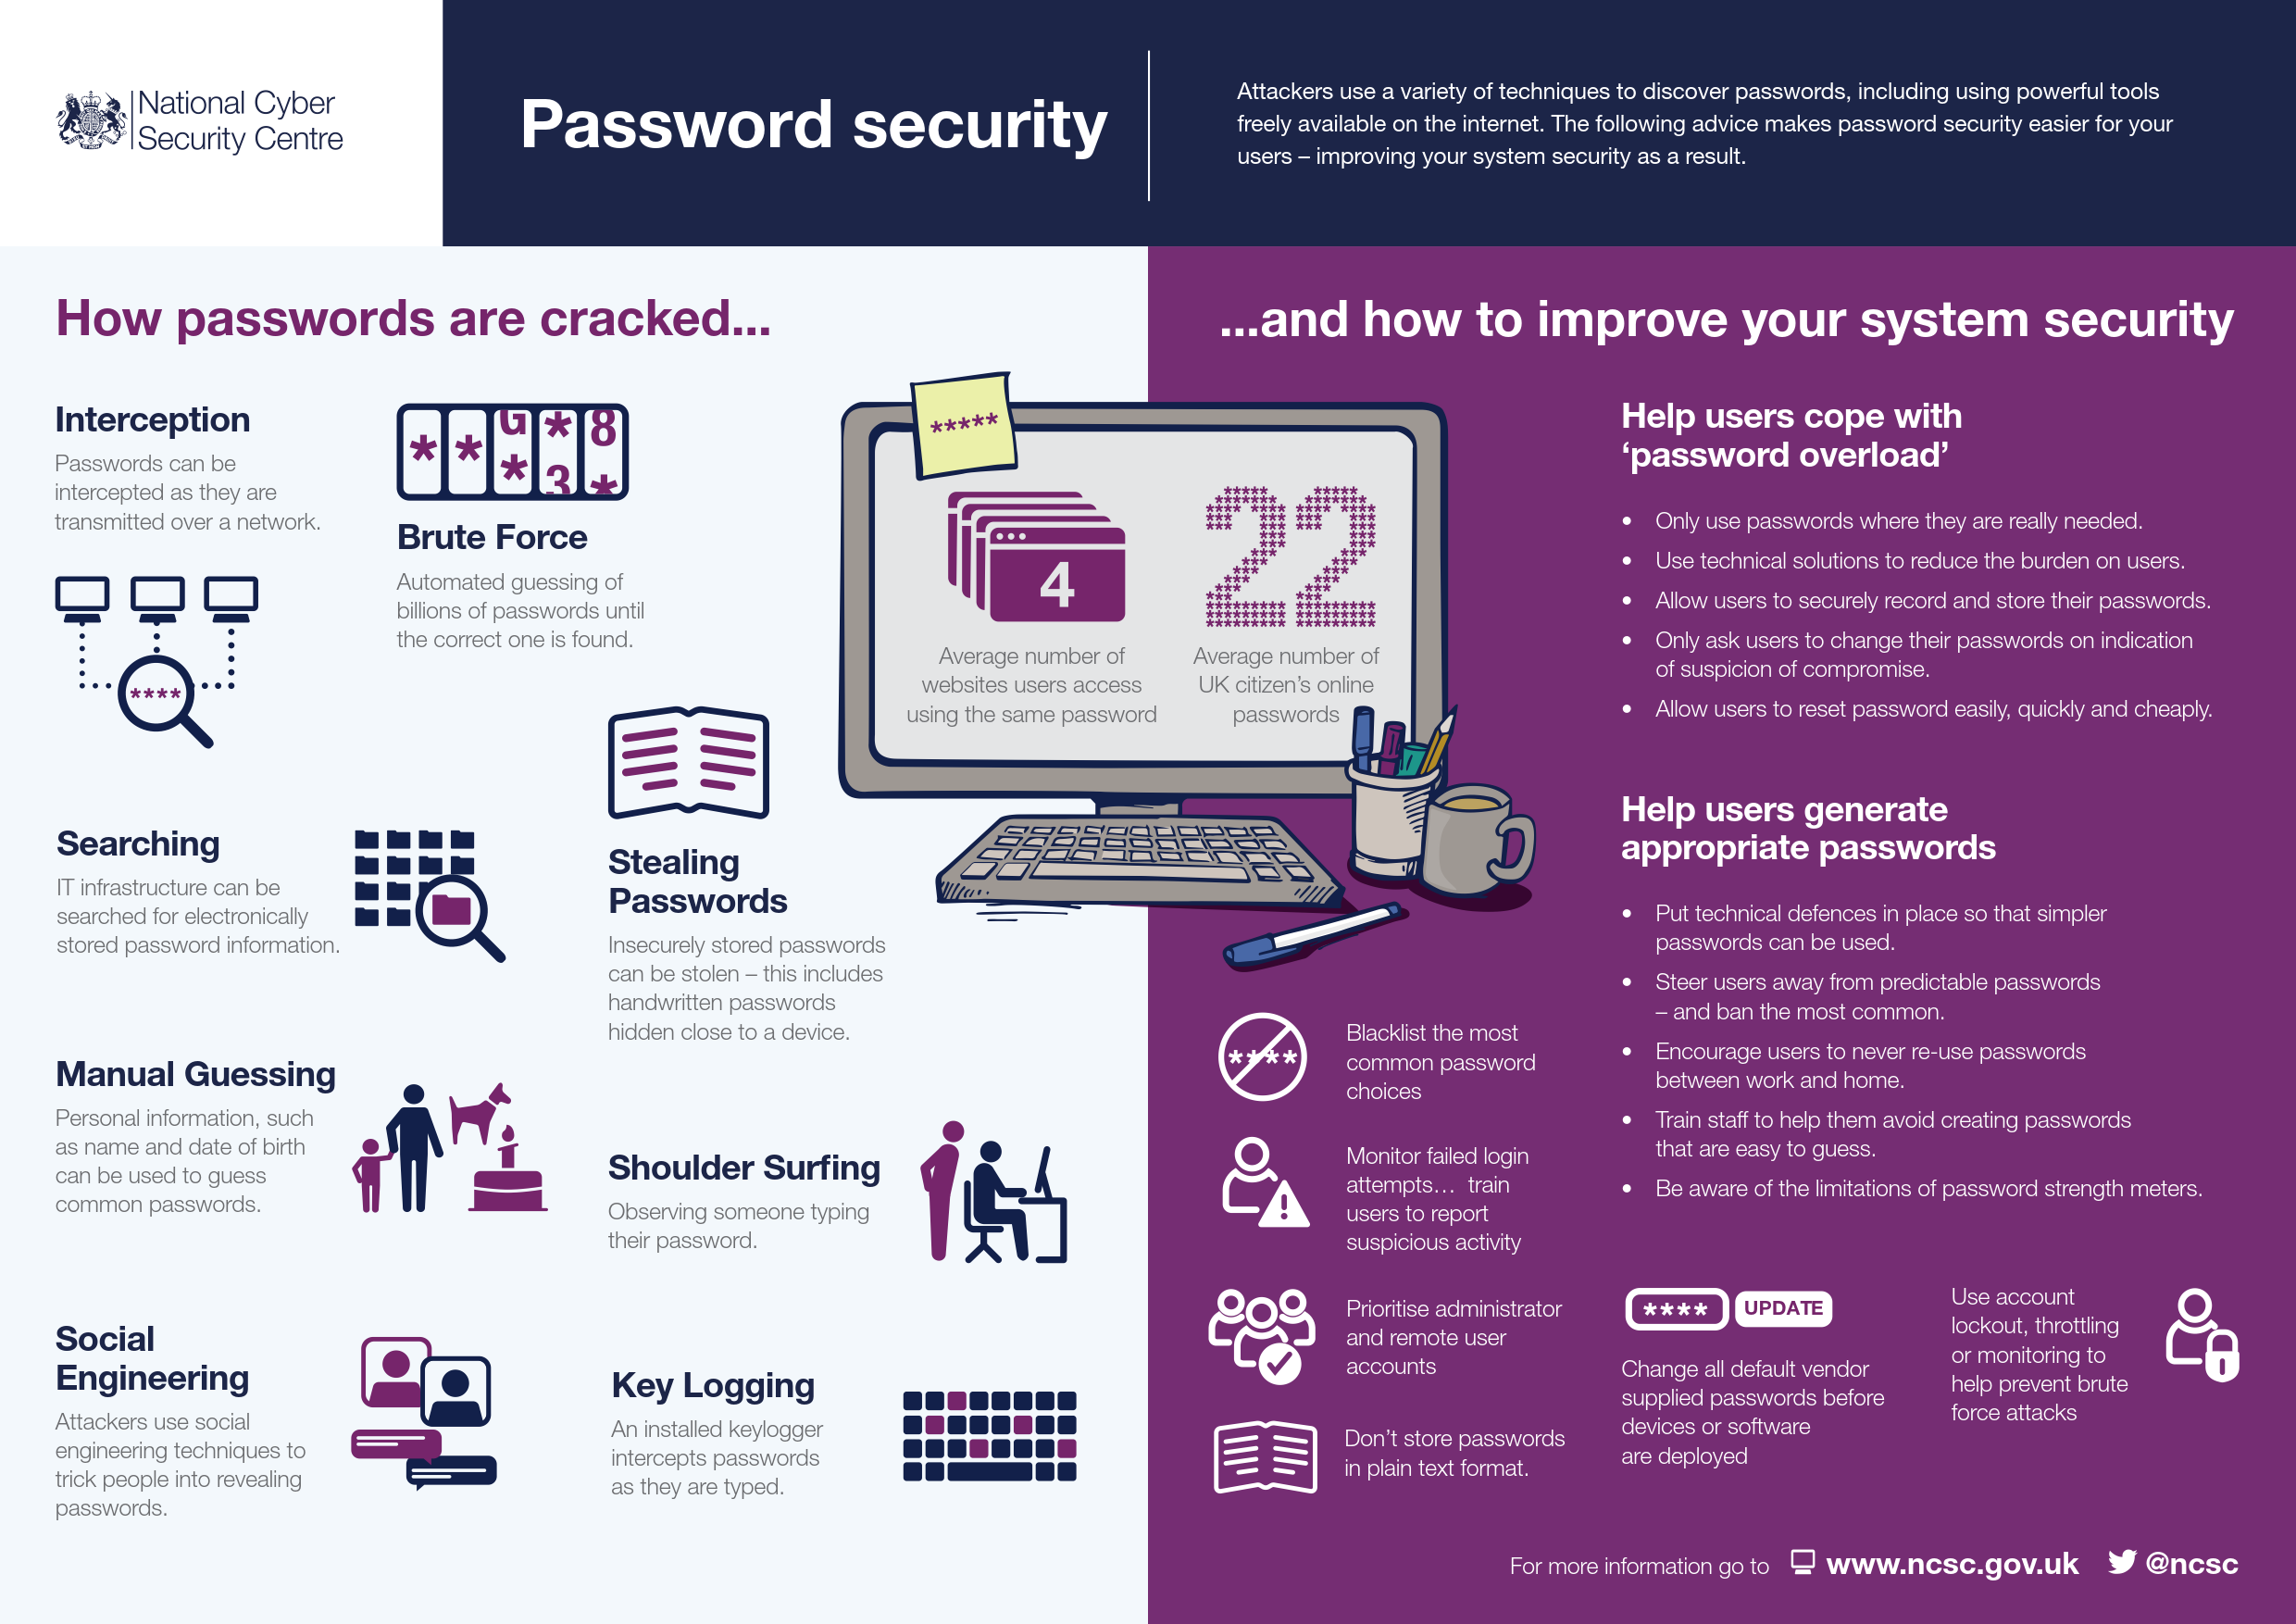 NCSC Password Security infographic